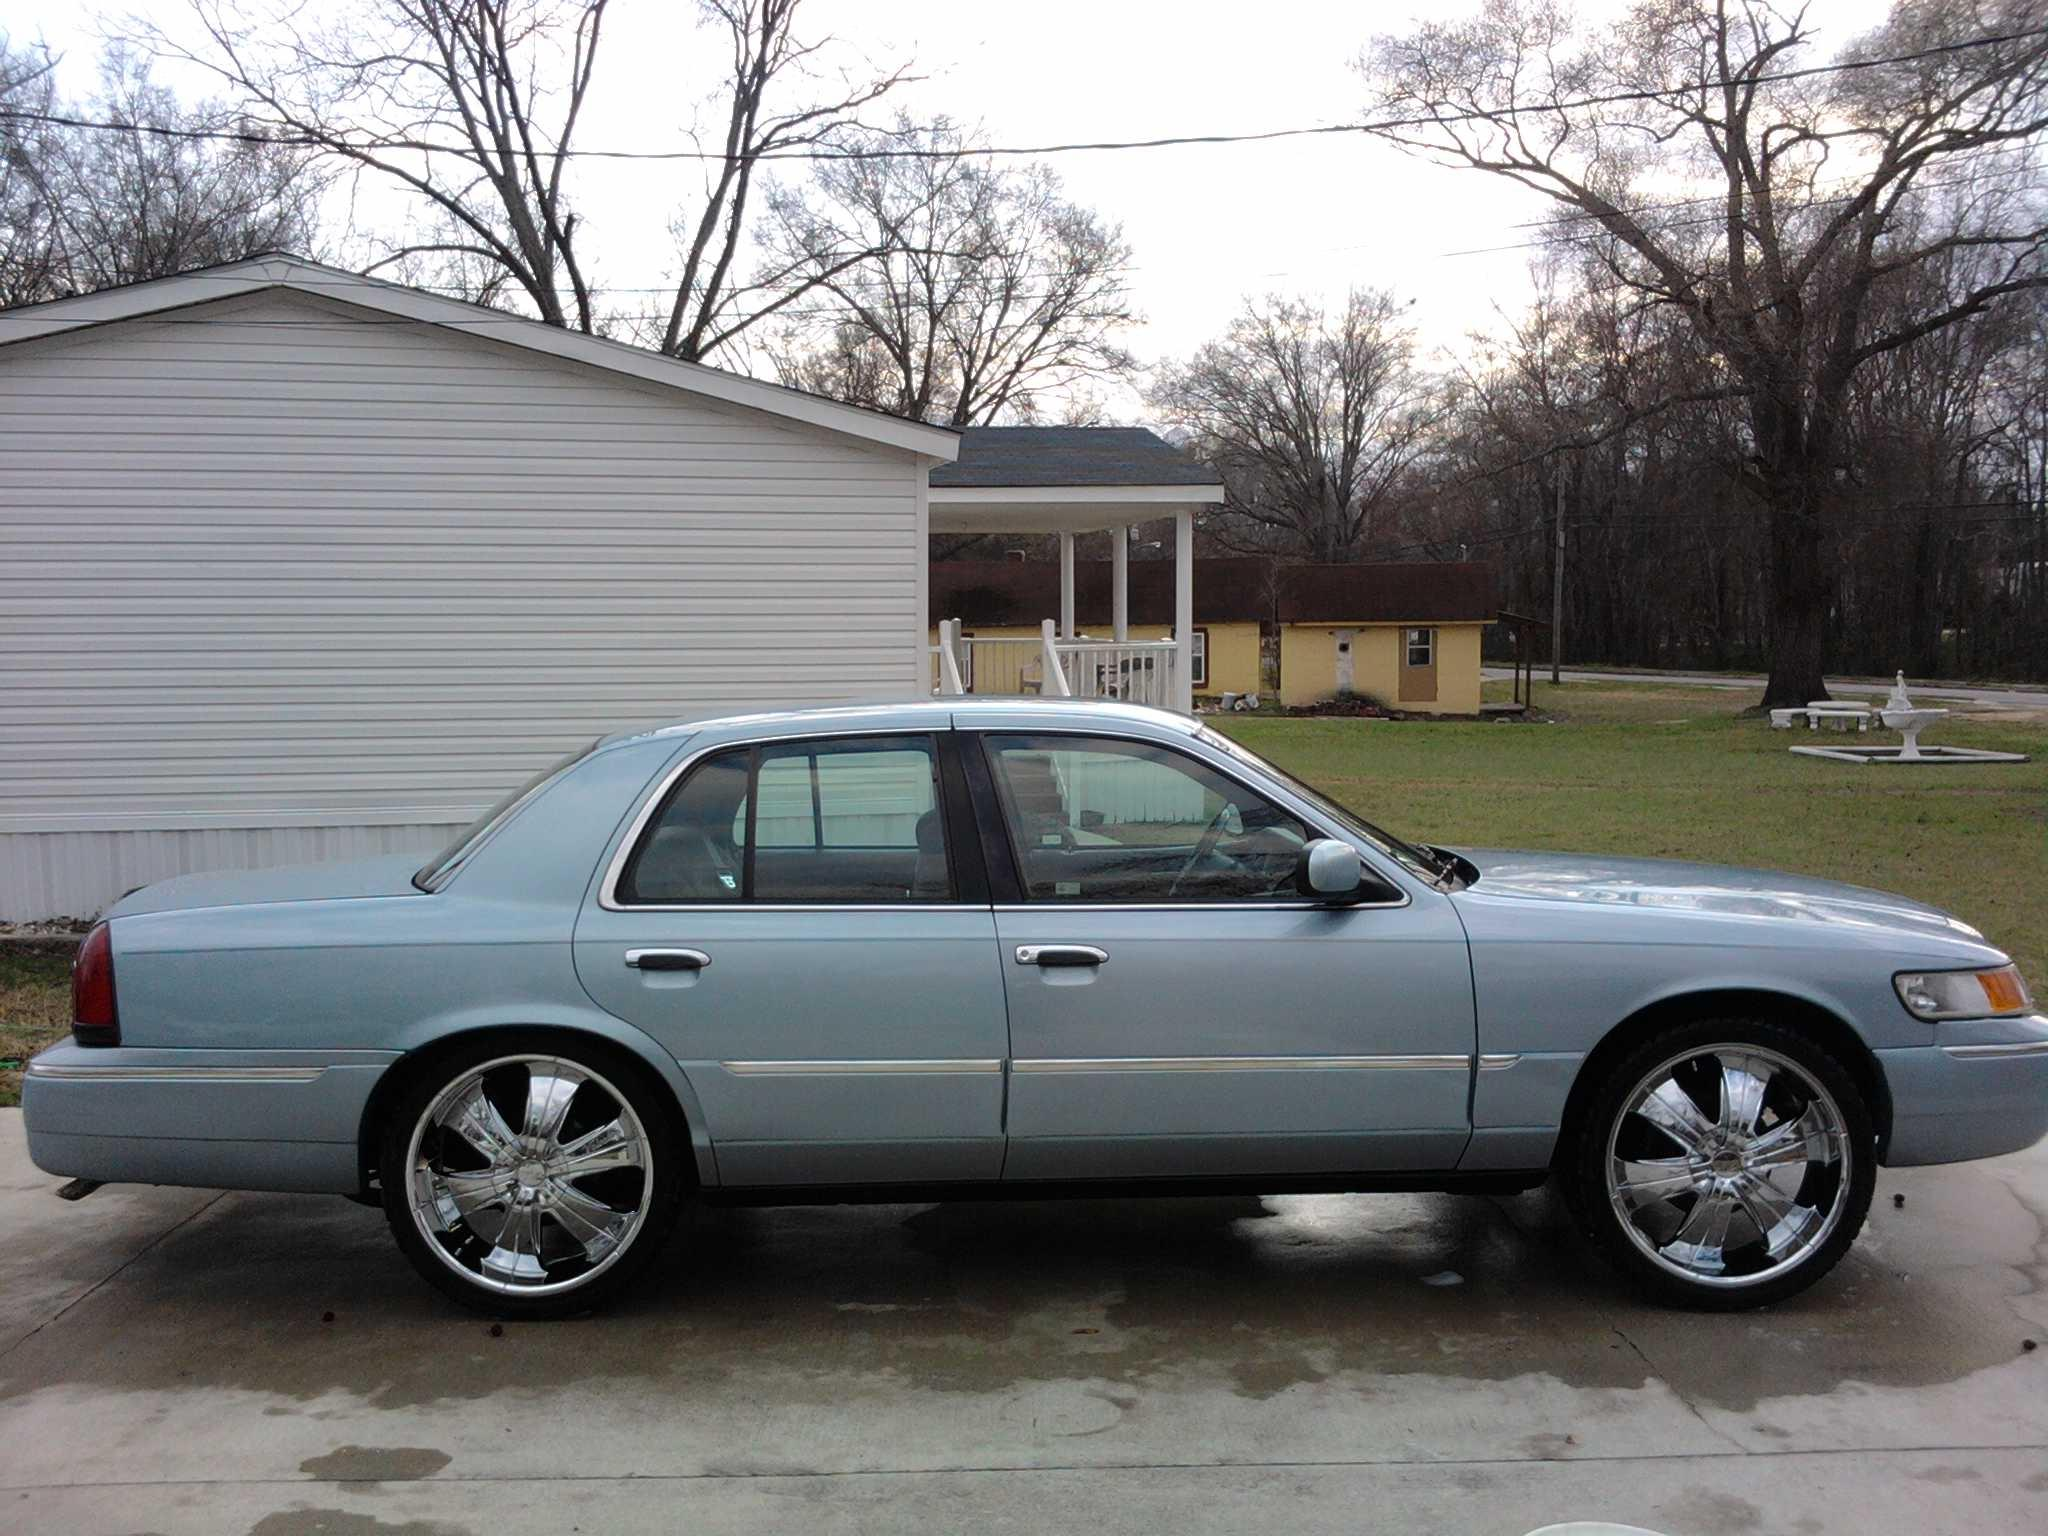 Honda Of Champaign >> DaMercDawg 1999 Mercury Grand Marquis Specs, Photos ...